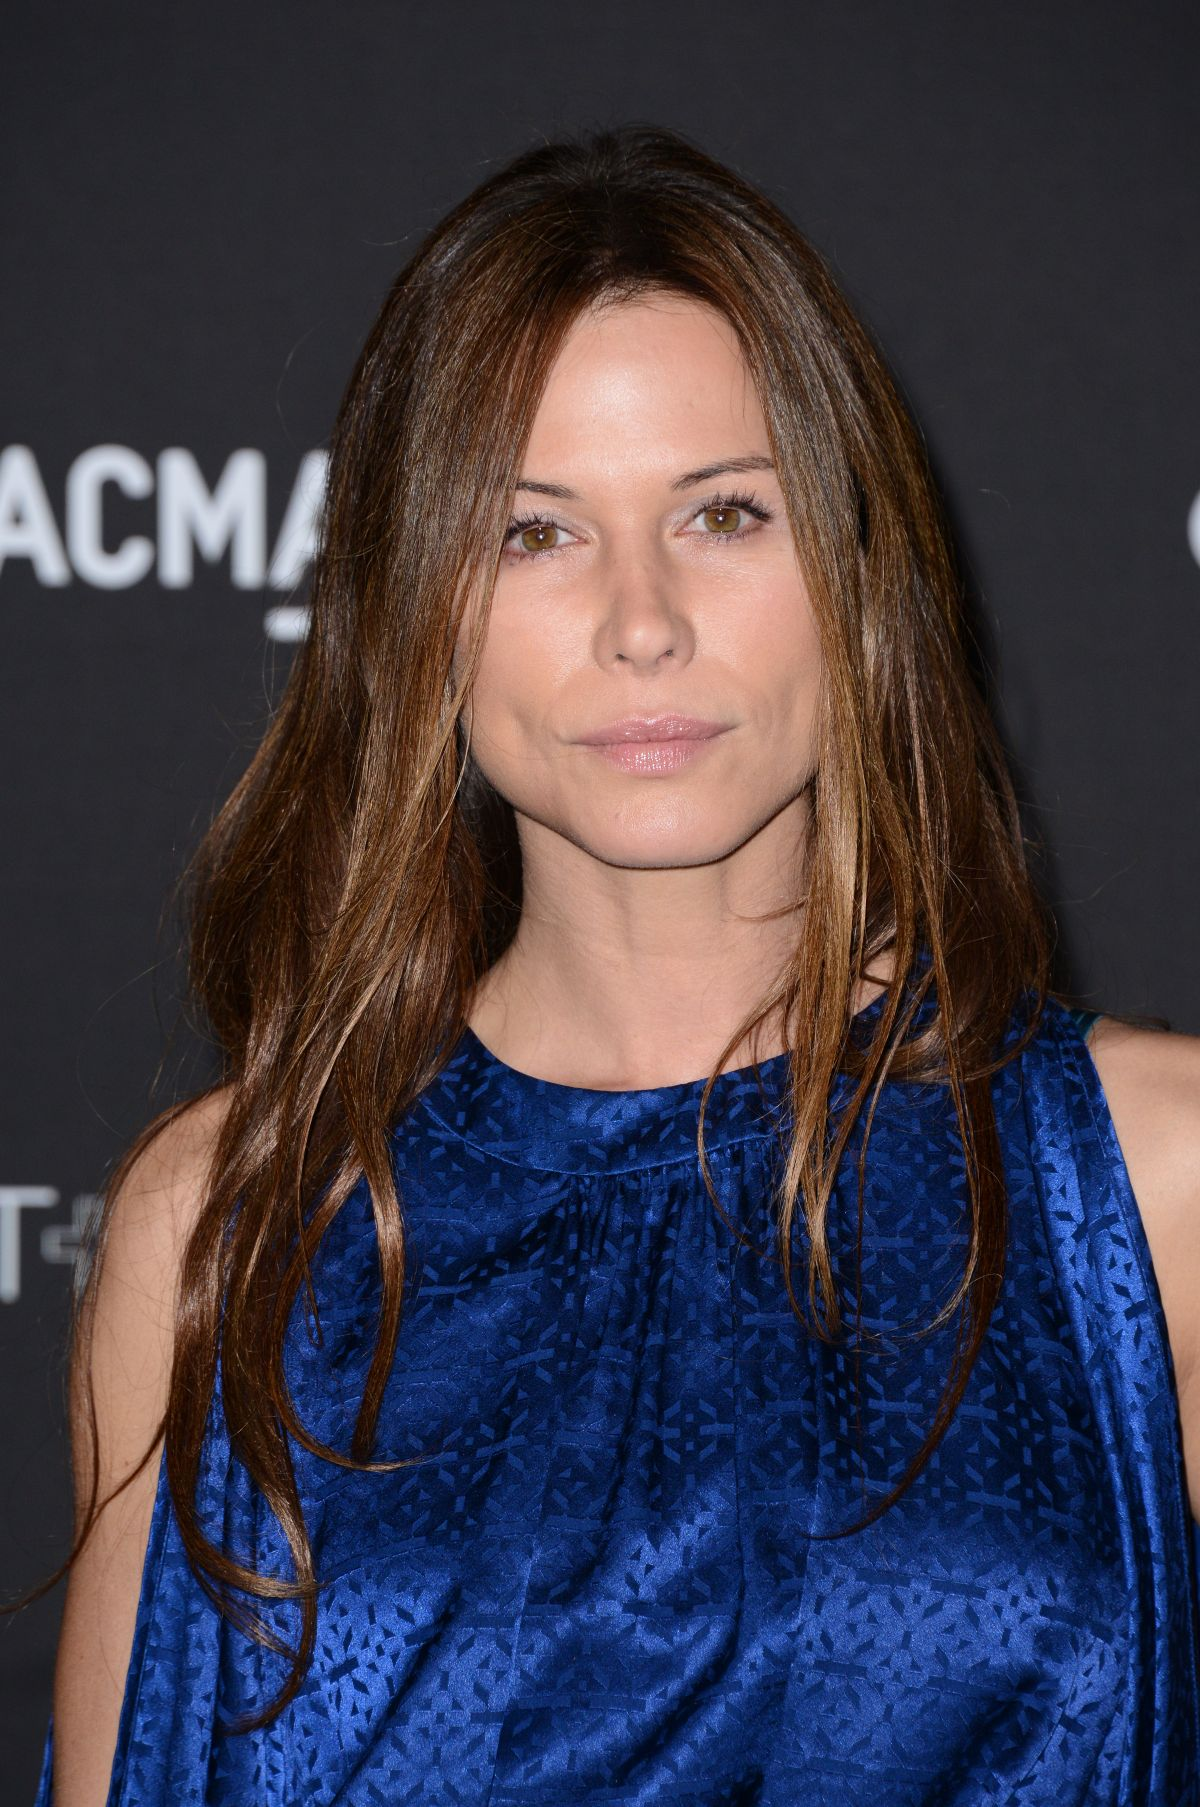 RHONA MITRA at 2014 Lacma Art + Film Gala in Los Angeles